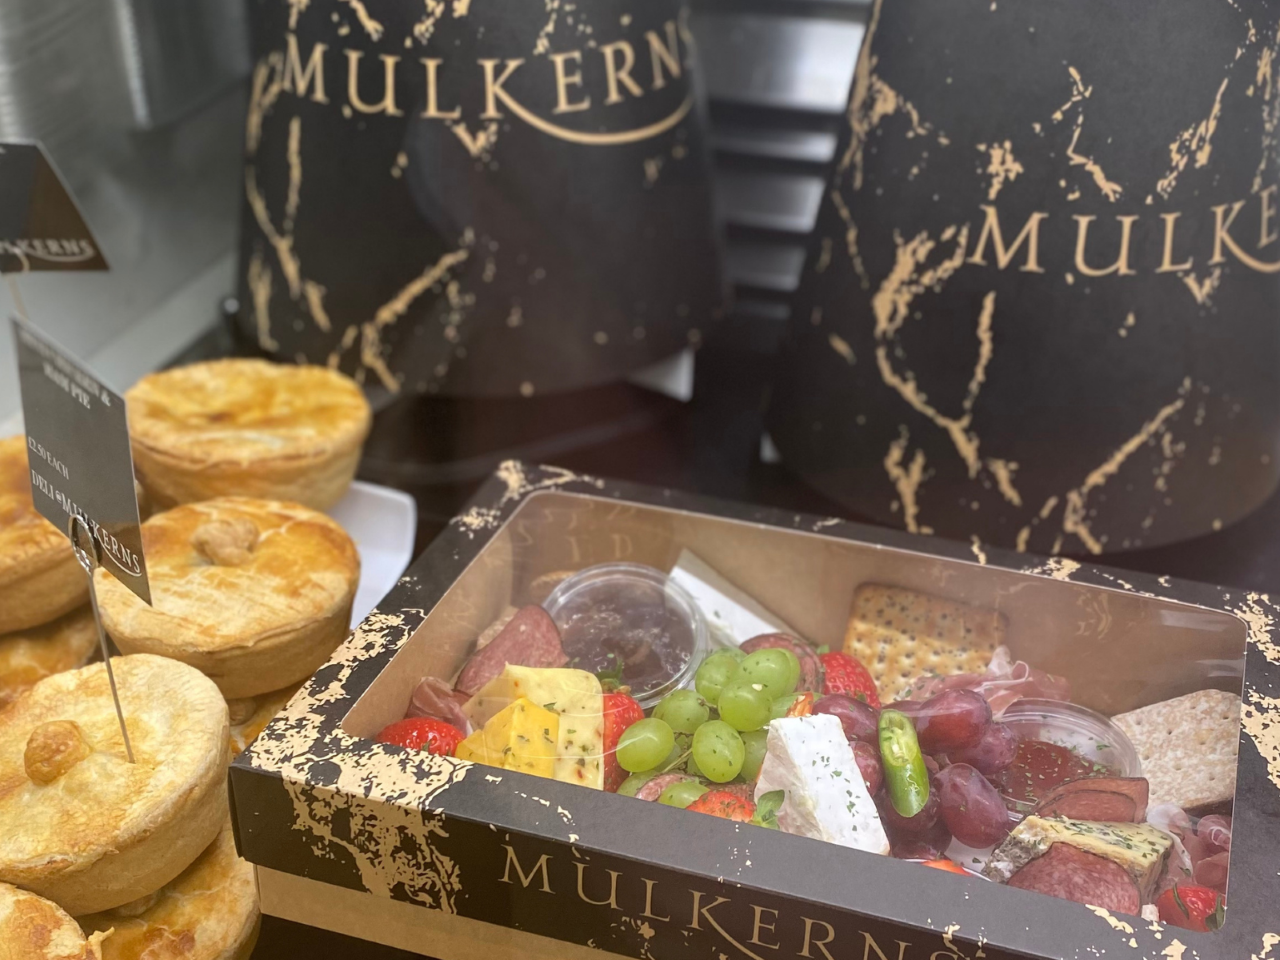 Cheese and Charcuterie Platter and Afternoon Tea Caddy